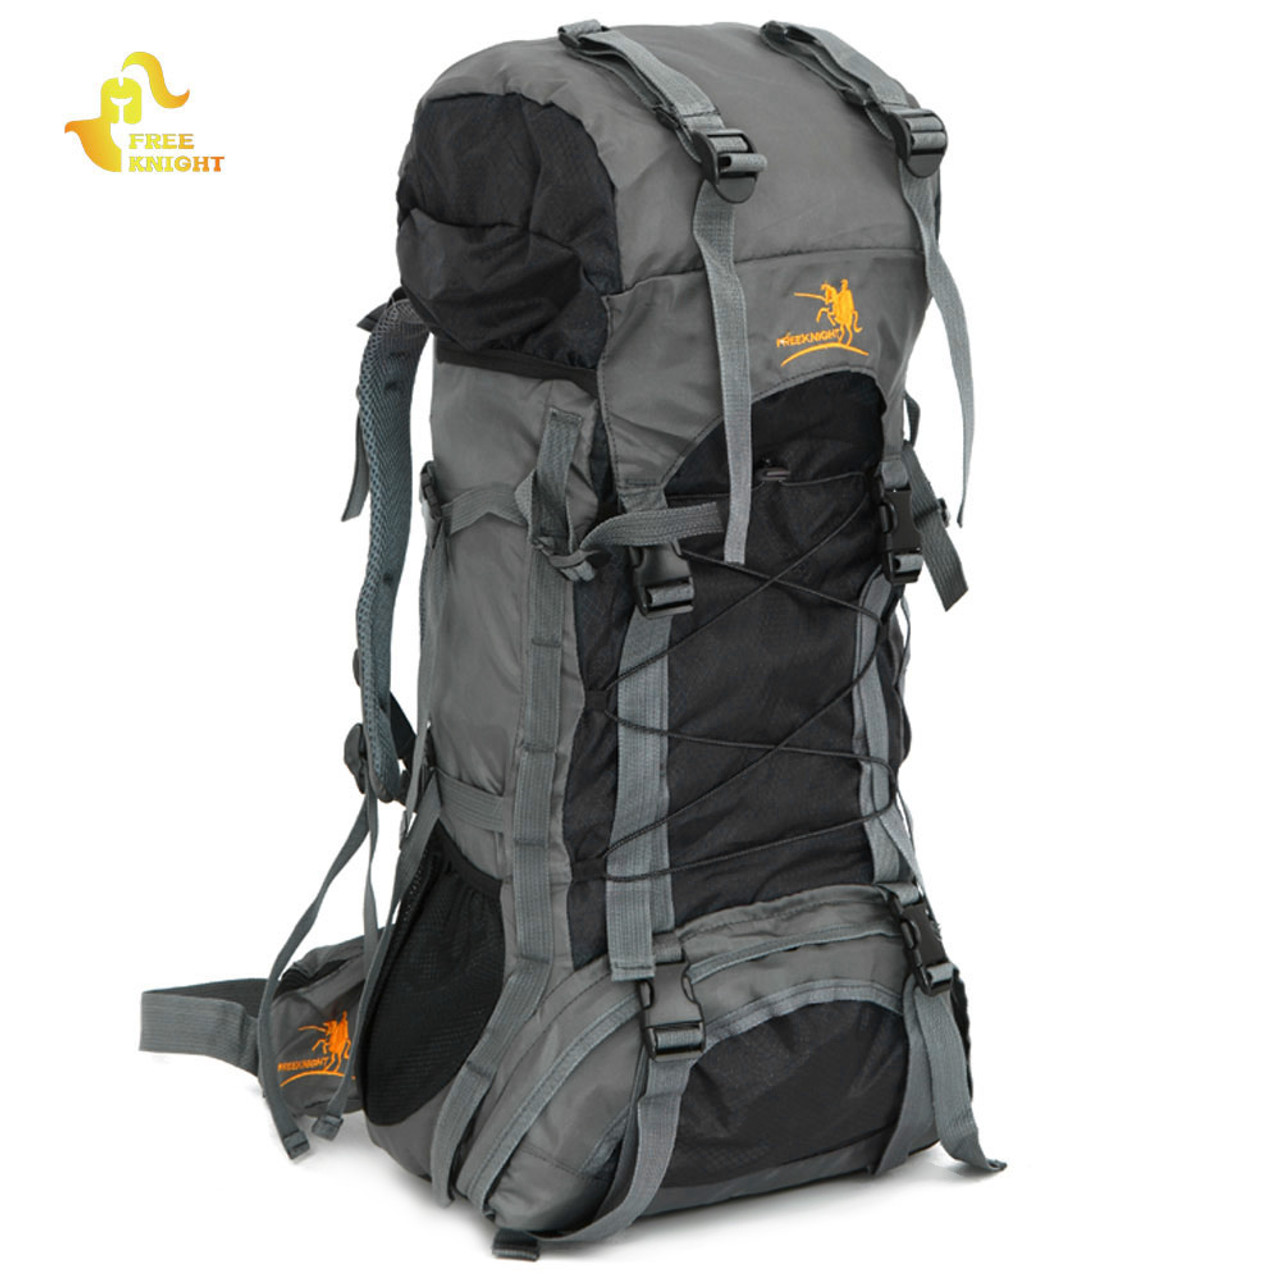 55be6bae2027 Free Knight Extra Large 60L Nylon Waterproof Mountaineering Backpack  Outdoor Sport Climbing Hiking Traveling Picnic Bag Rucksack -  OnshopDeals.Com